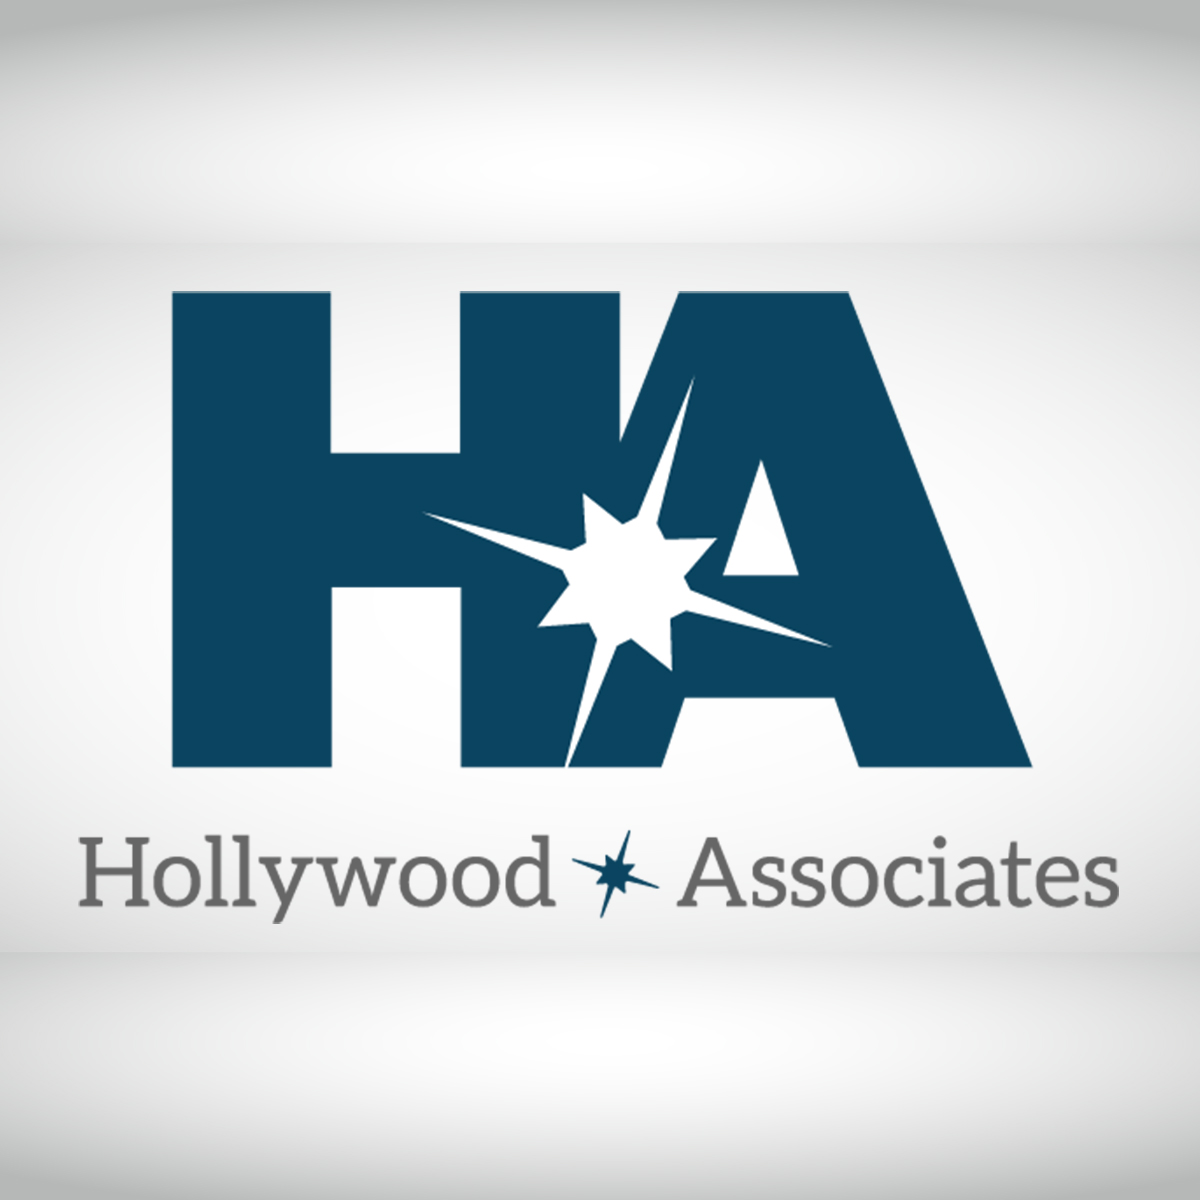 Hollywood & Associates Logo